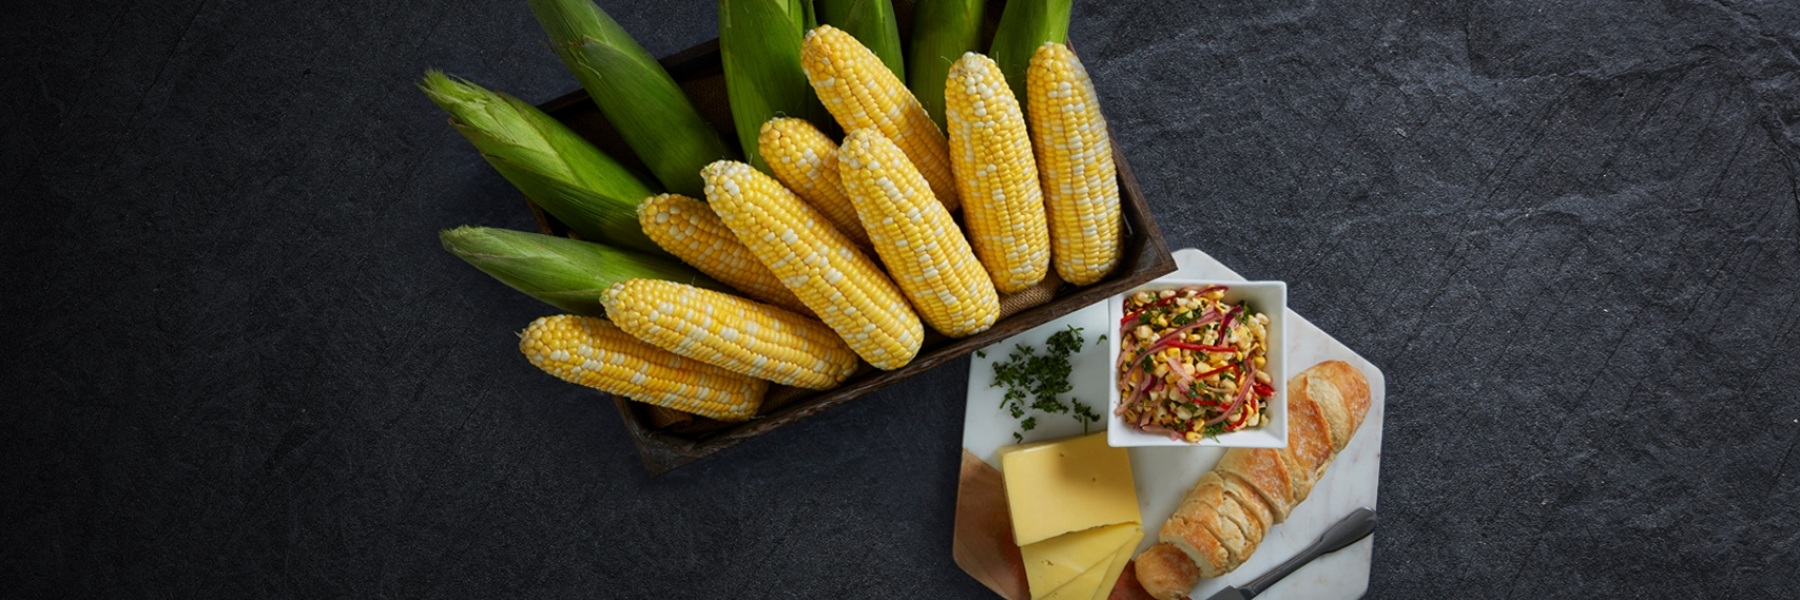 header banner 2230x431_MASTER_larger canvas-corn3_F